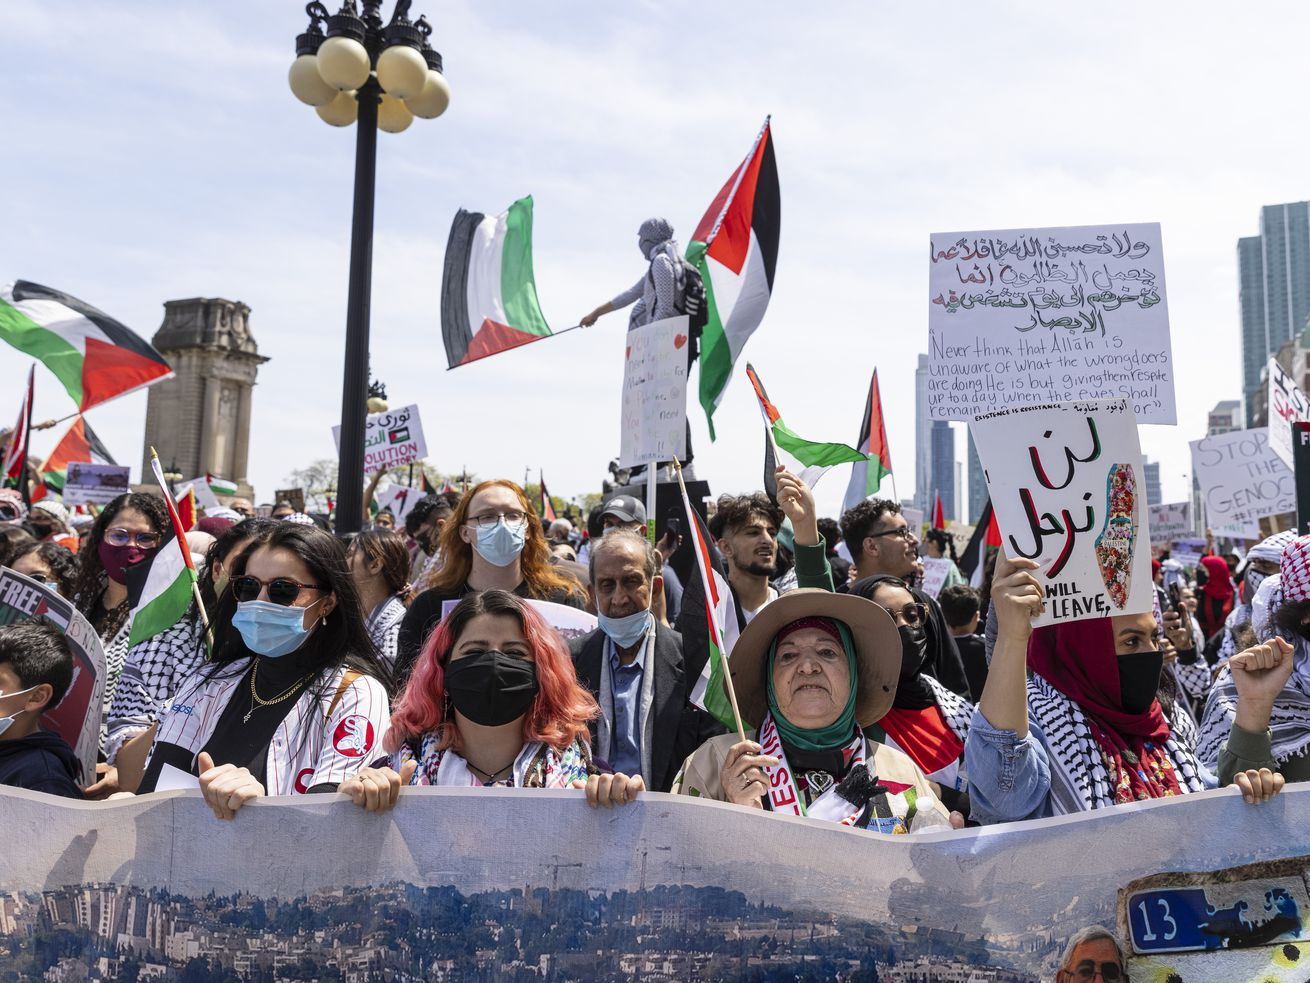 Supporters hold up flags and posters during a rally and march in support of Palestinians at Congress Plaza Garden in the Loop in response to an ongoing assault between Israelis and Palestinians in the middle east, Sunday, May 16, 2021. | Anthony Vazquez/Sun-Times